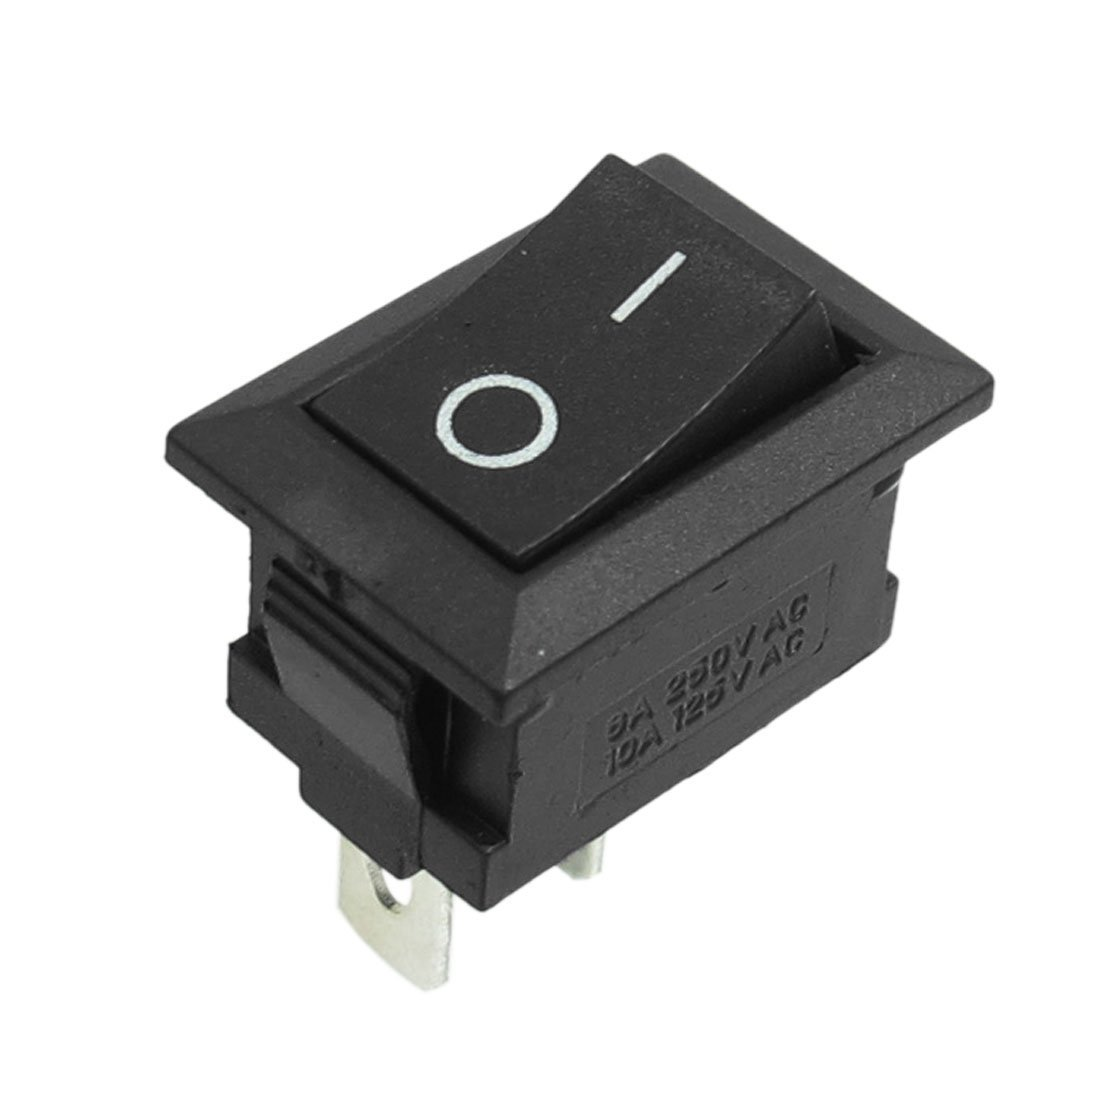 uxcell AC250V 6A / AC125V 10A SPST O/I Rocker Switch for Electric Grinder